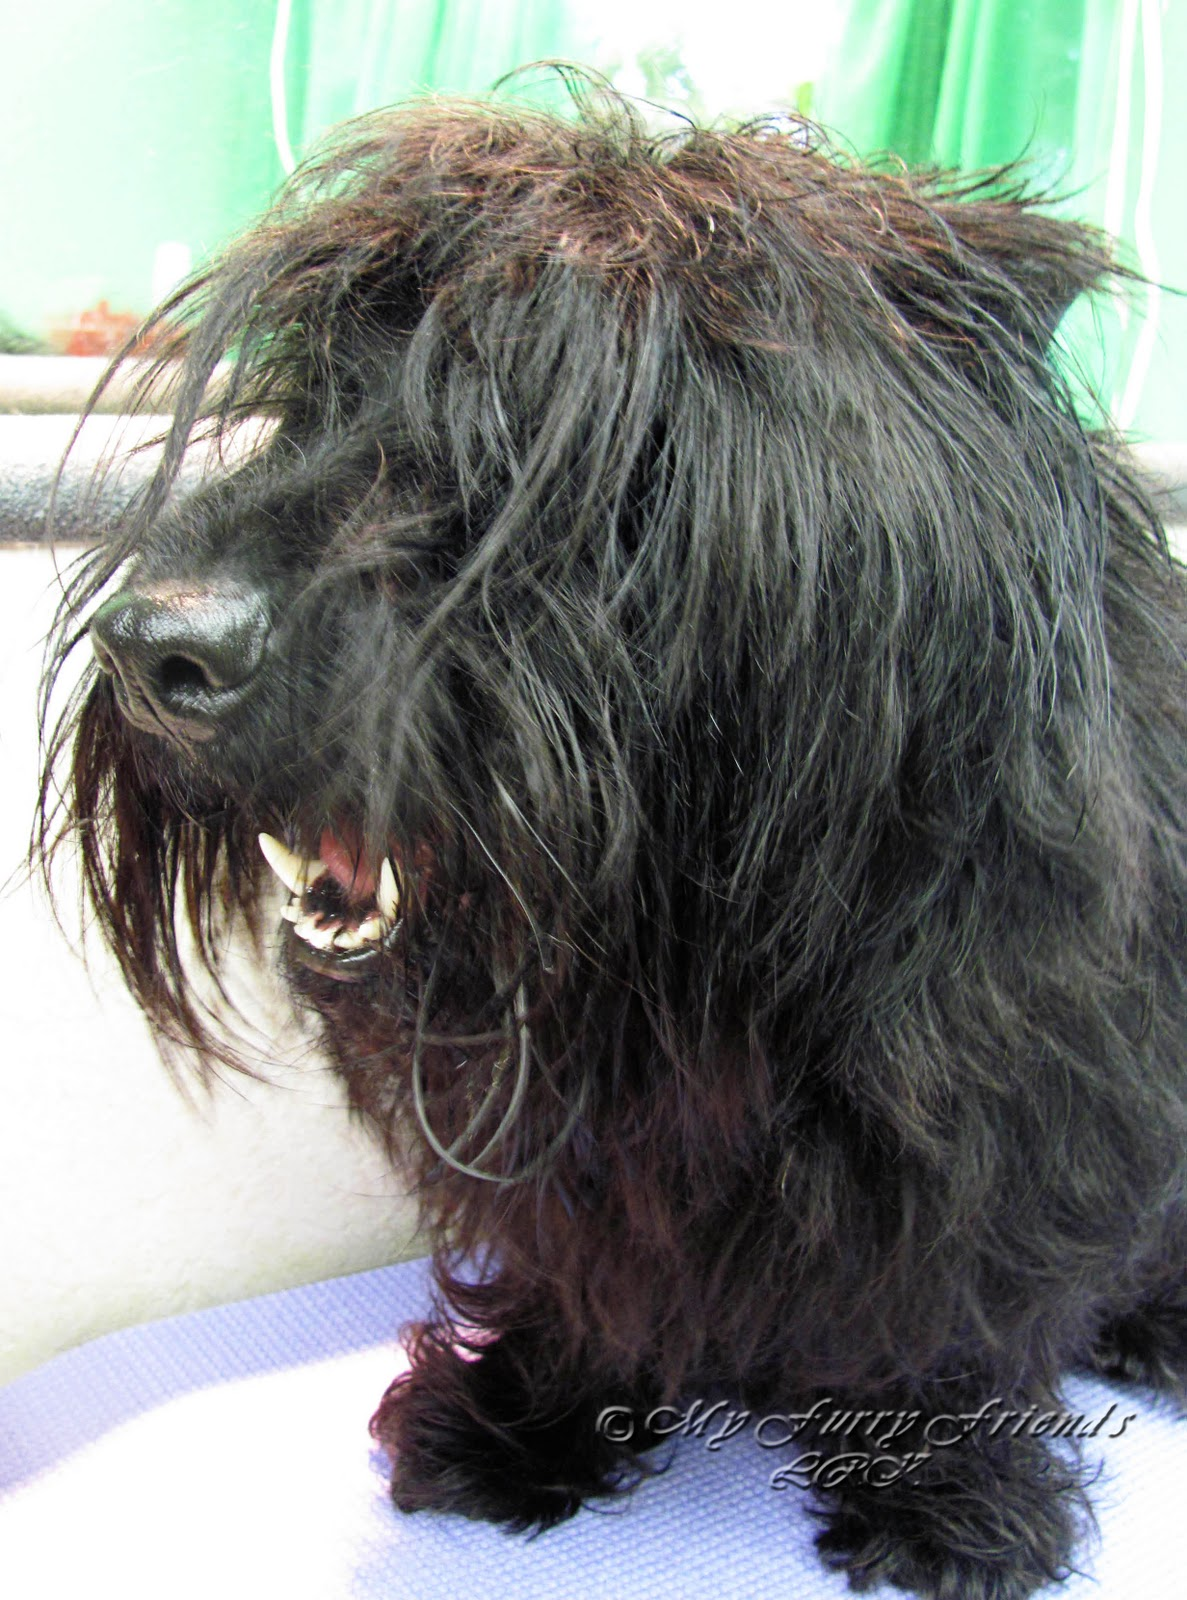 Hair Cuts For A Scottish Terrier | scottish terrier dog